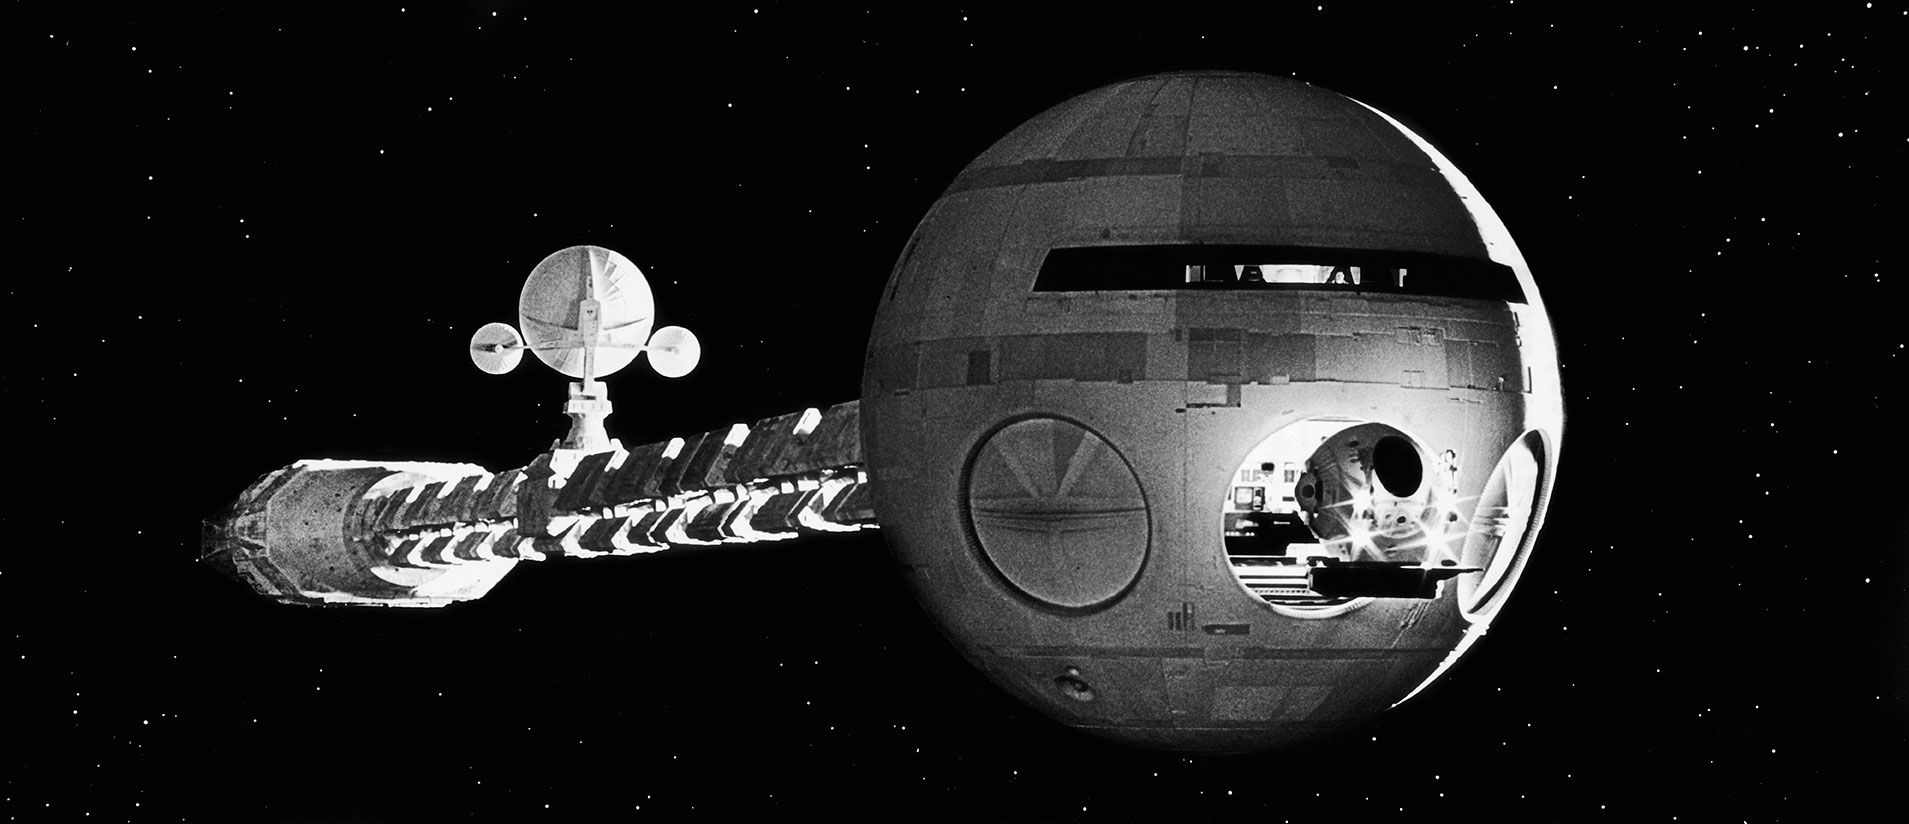 Image result for 2001 space odyssey spaceship blueprint image result for 2001 space odyssey spaceship blueprint malvernweather Images